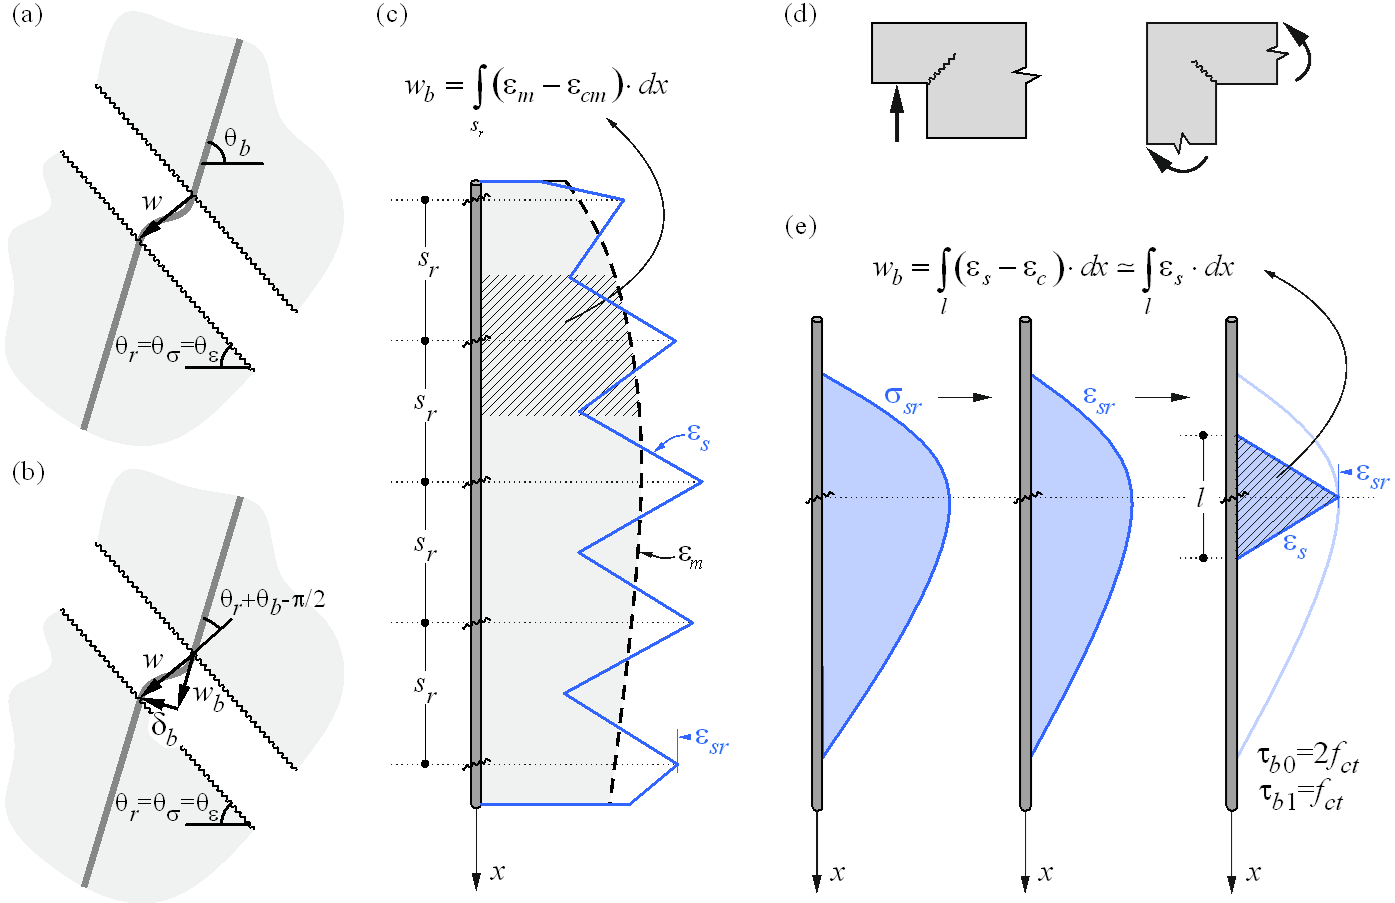 Fig. 24Crack width calculation: (a) considered crack kinematics; (b) projection of crack kinematics into the principal directions of the reinforcing bar; (c) crack width in the direction of the reinforcing bar for stabilized cracking; (d) cases with local non-stabilized cracking regardless of the reinforcement amount; (e) crack width in the direction of the reinforcing bar for non-stabilized cracking.